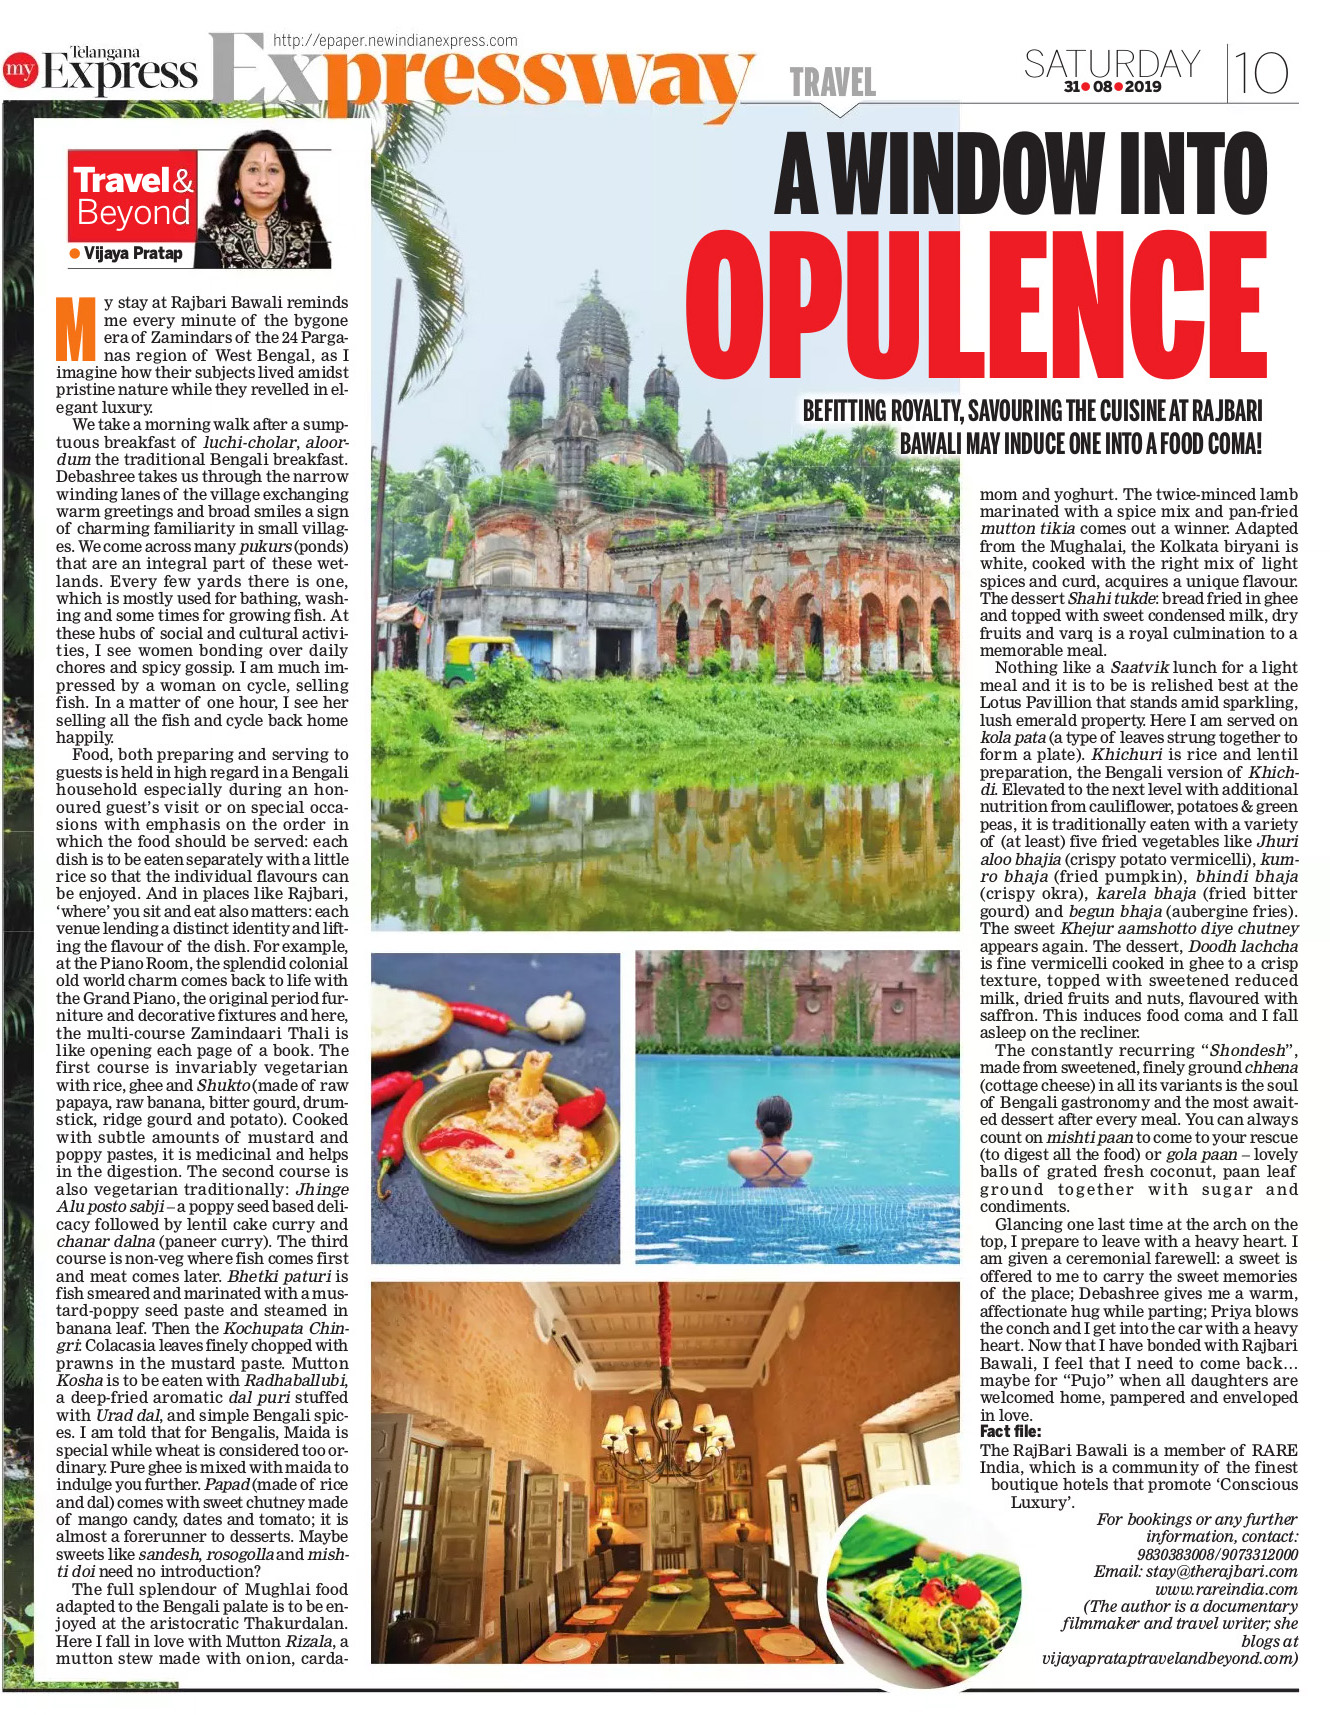 The New Indian Express (Telangana Express-Warangal)